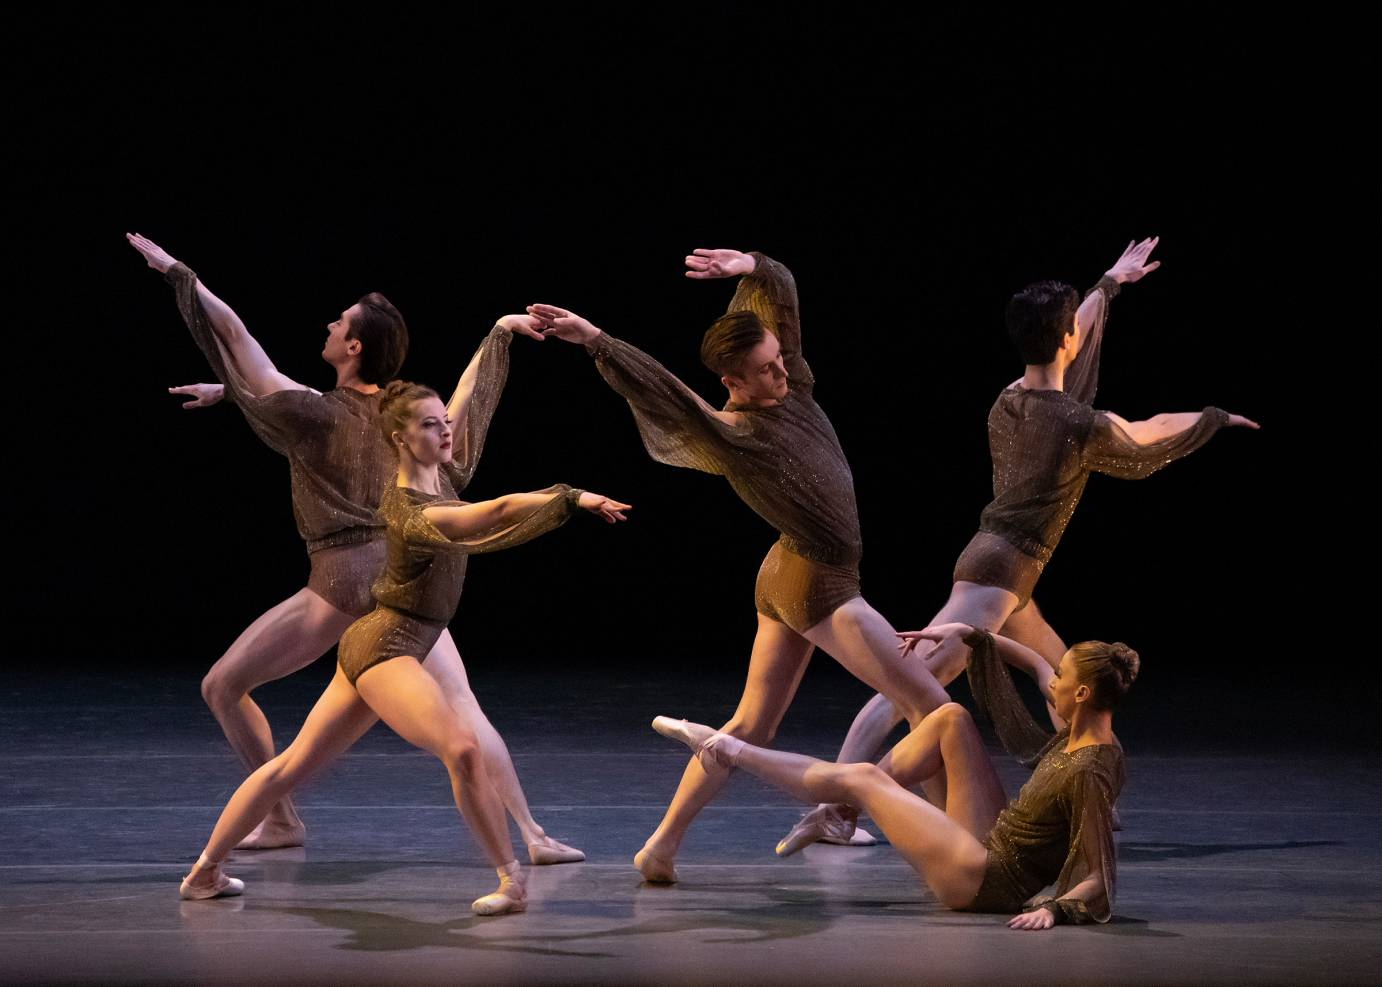 Dancers in brown pose with their arms extended